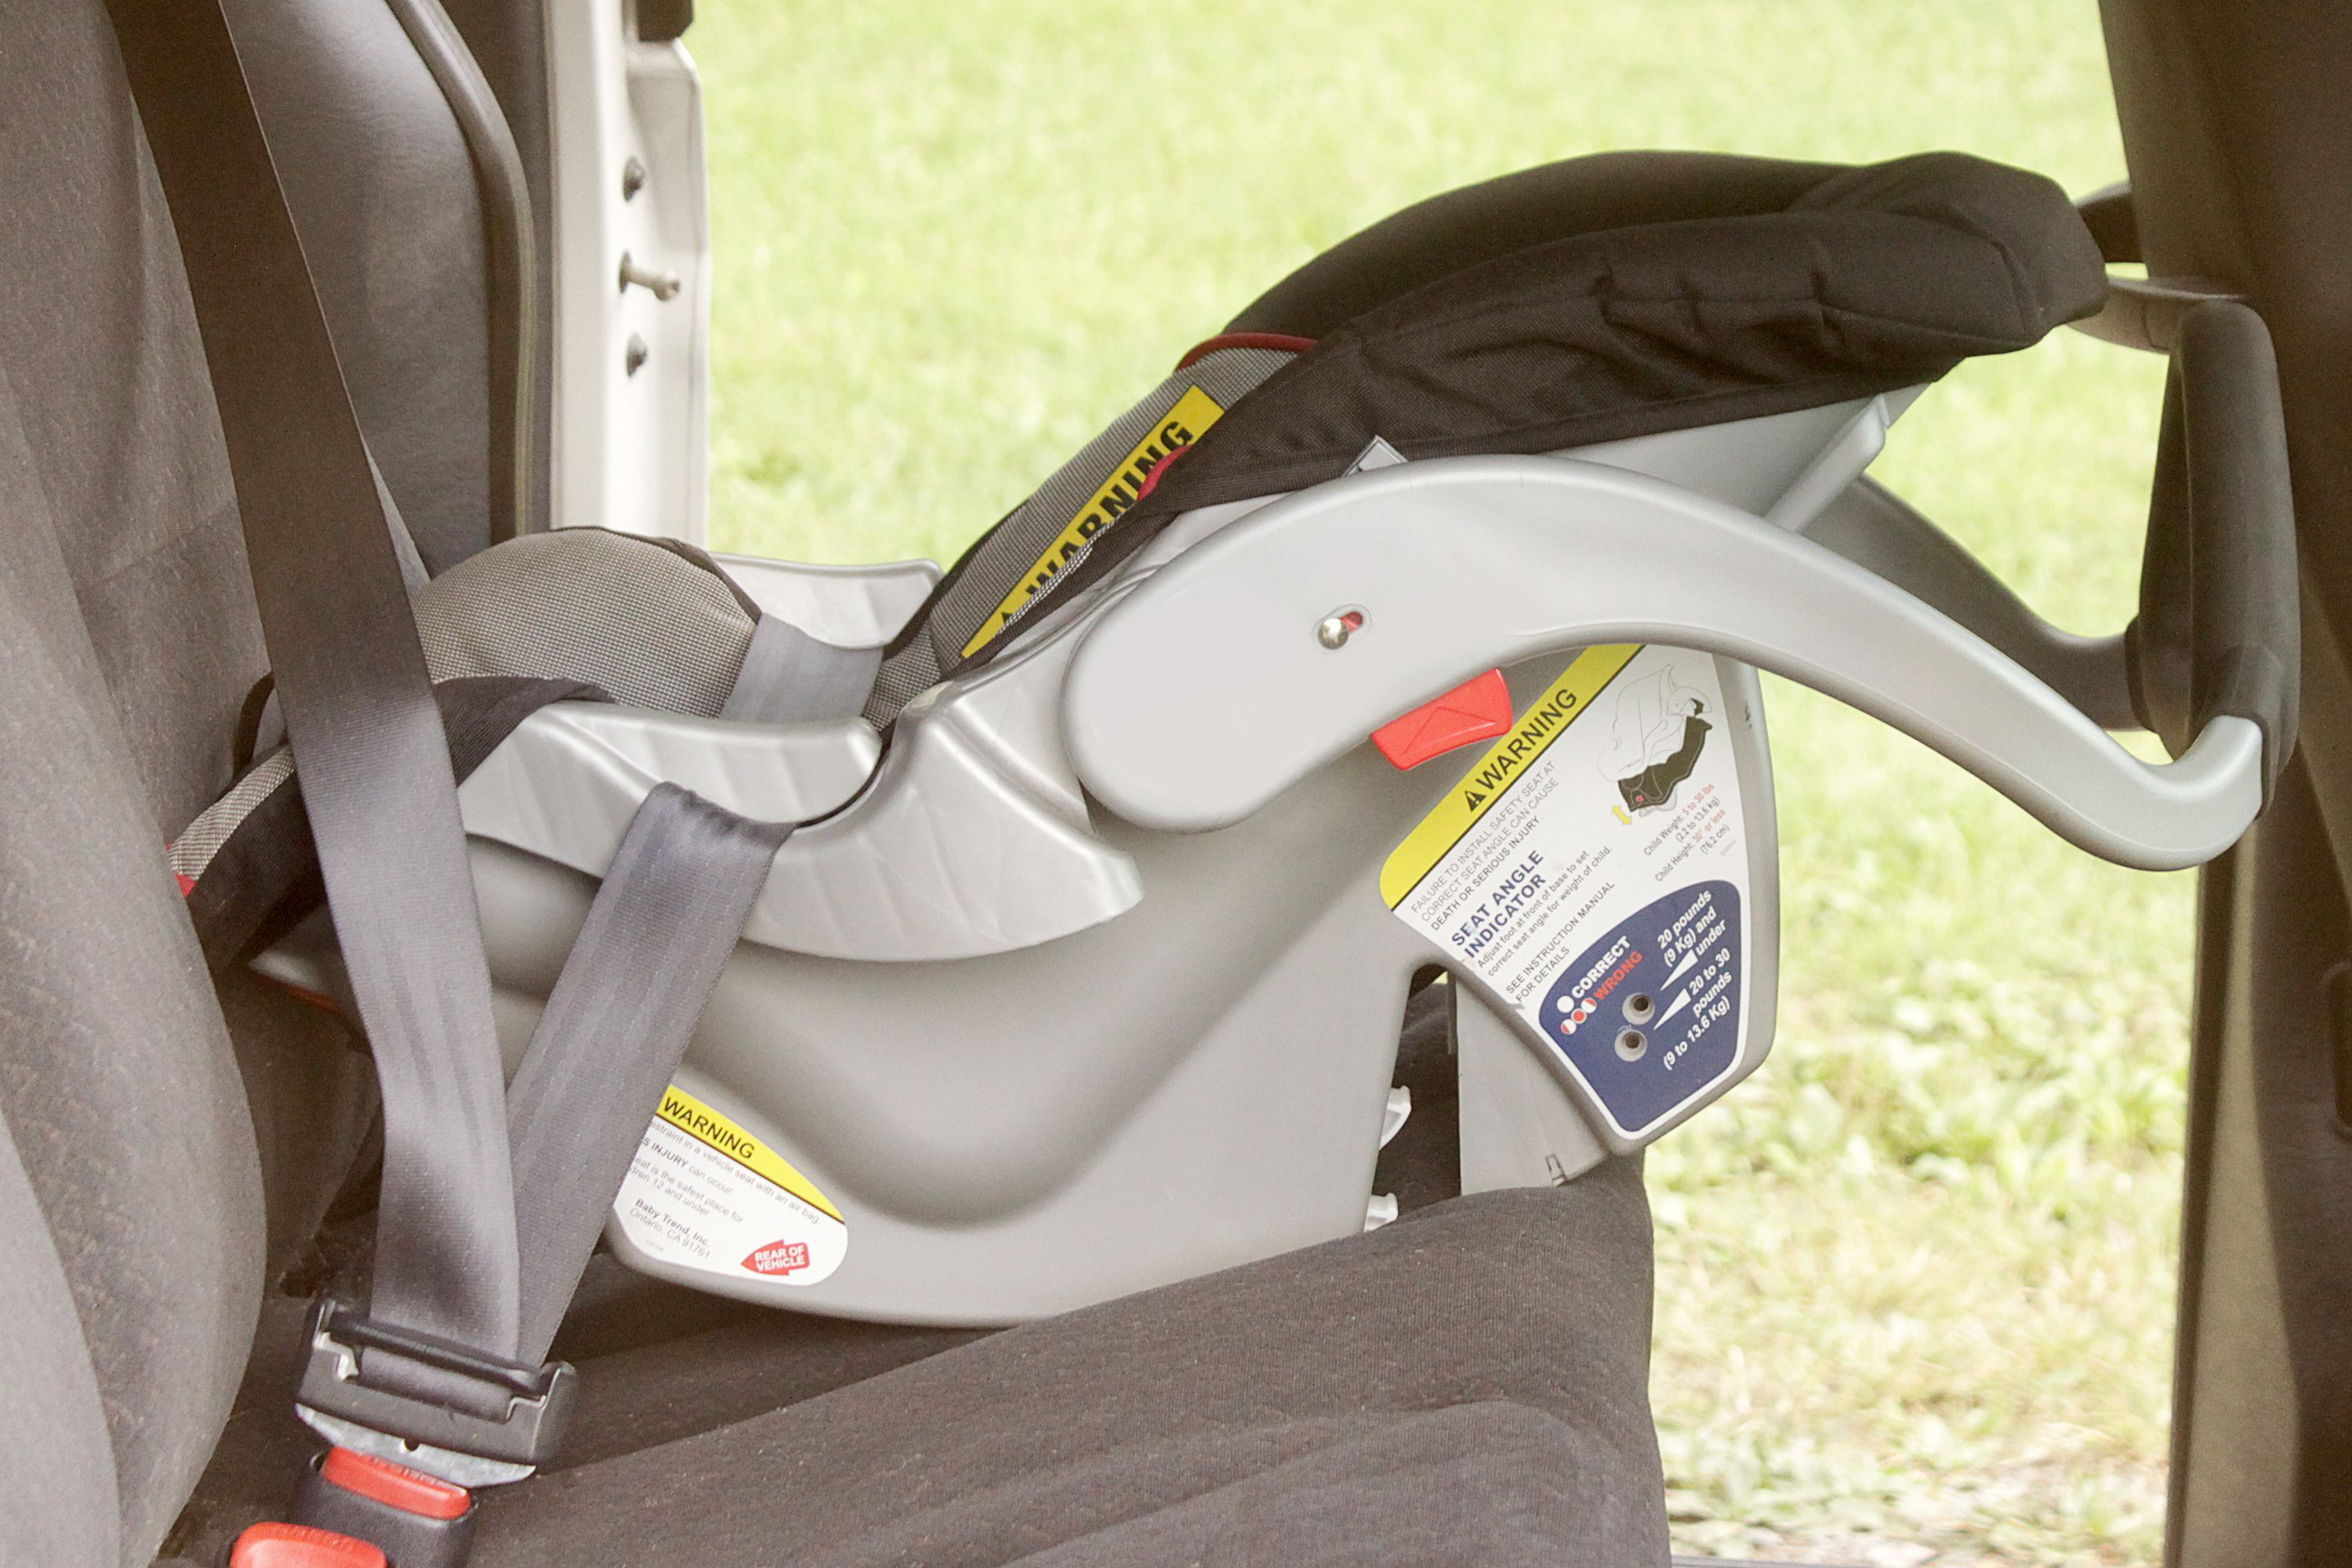 Graco Infant Car Seat Stroller Instructions How To Install A Car Seat Without A Base With Pictures